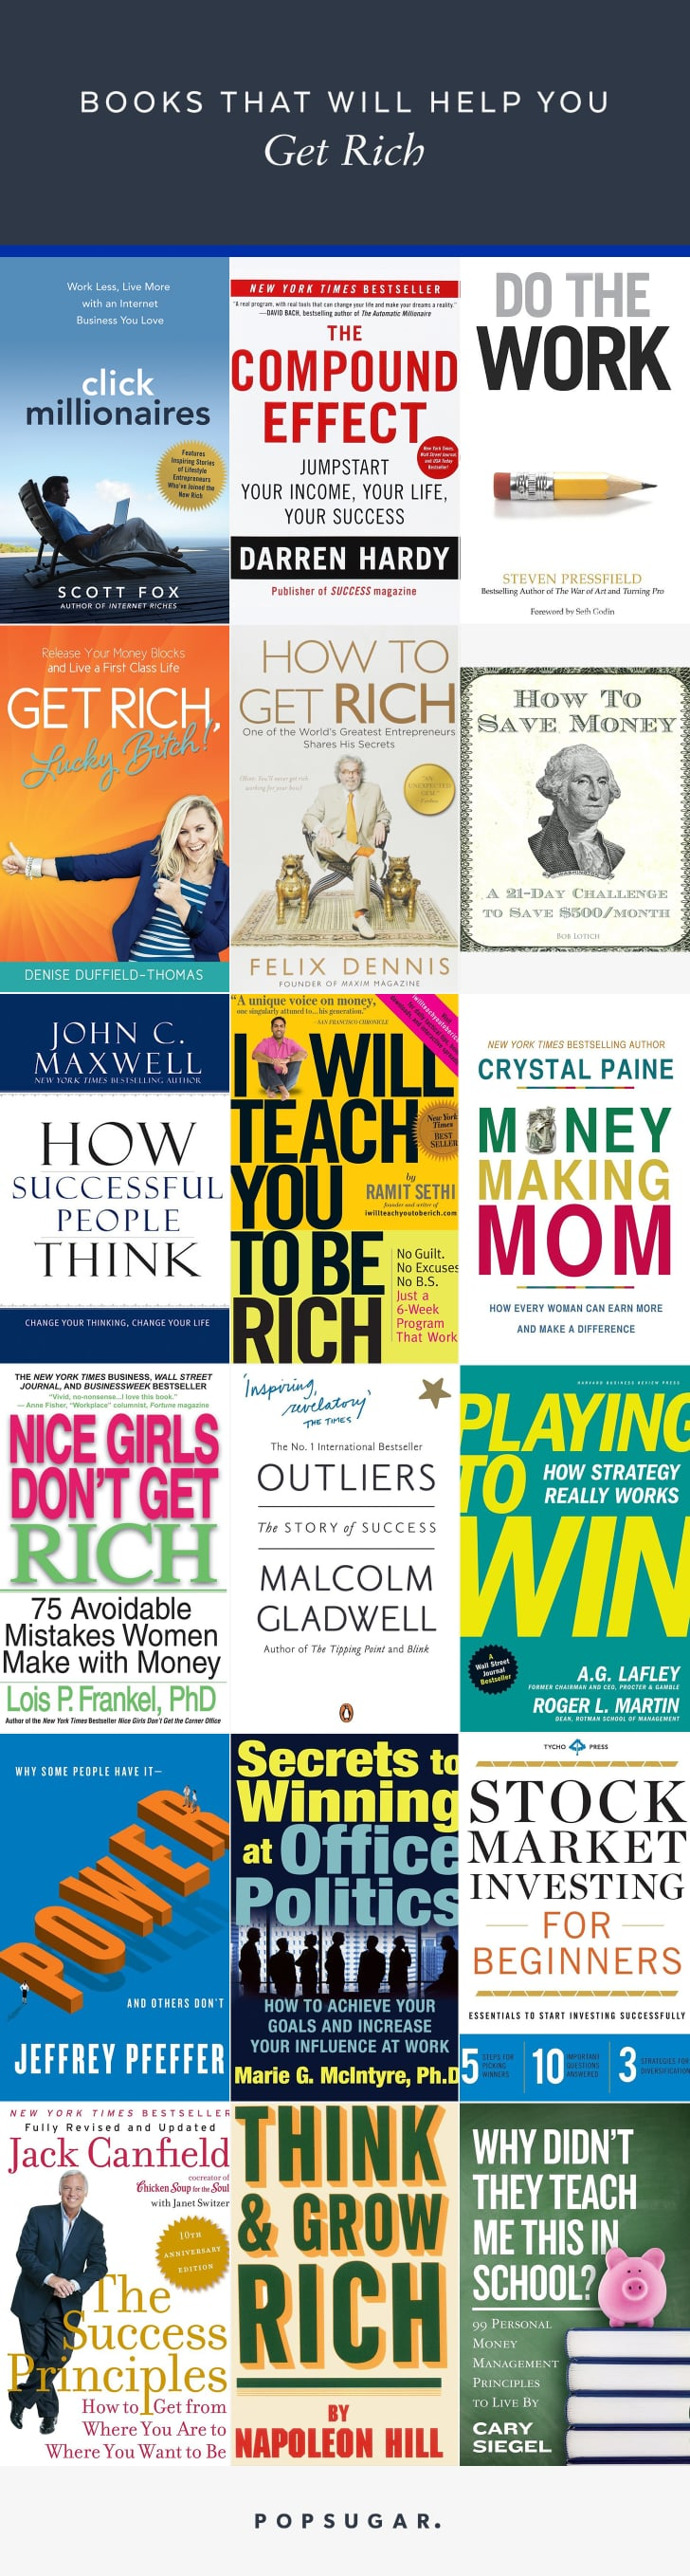 18 Books That Will Help You Get Rich